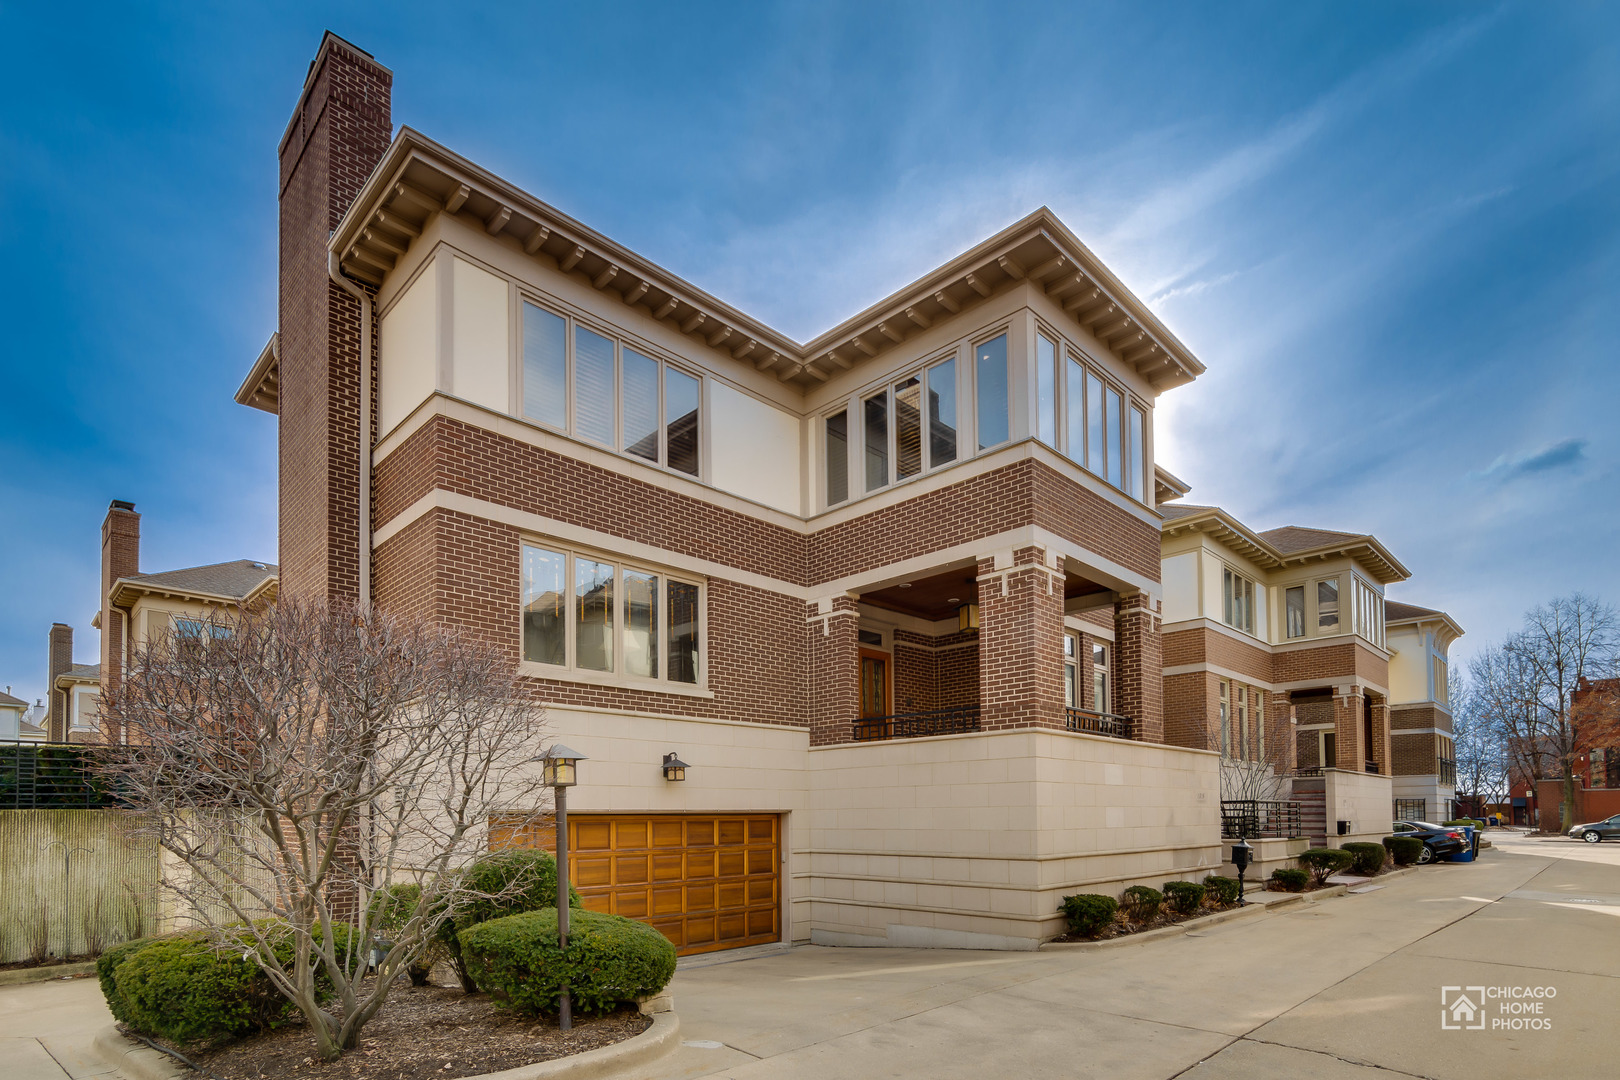 custom homes for sale in chicago near south side chicago real